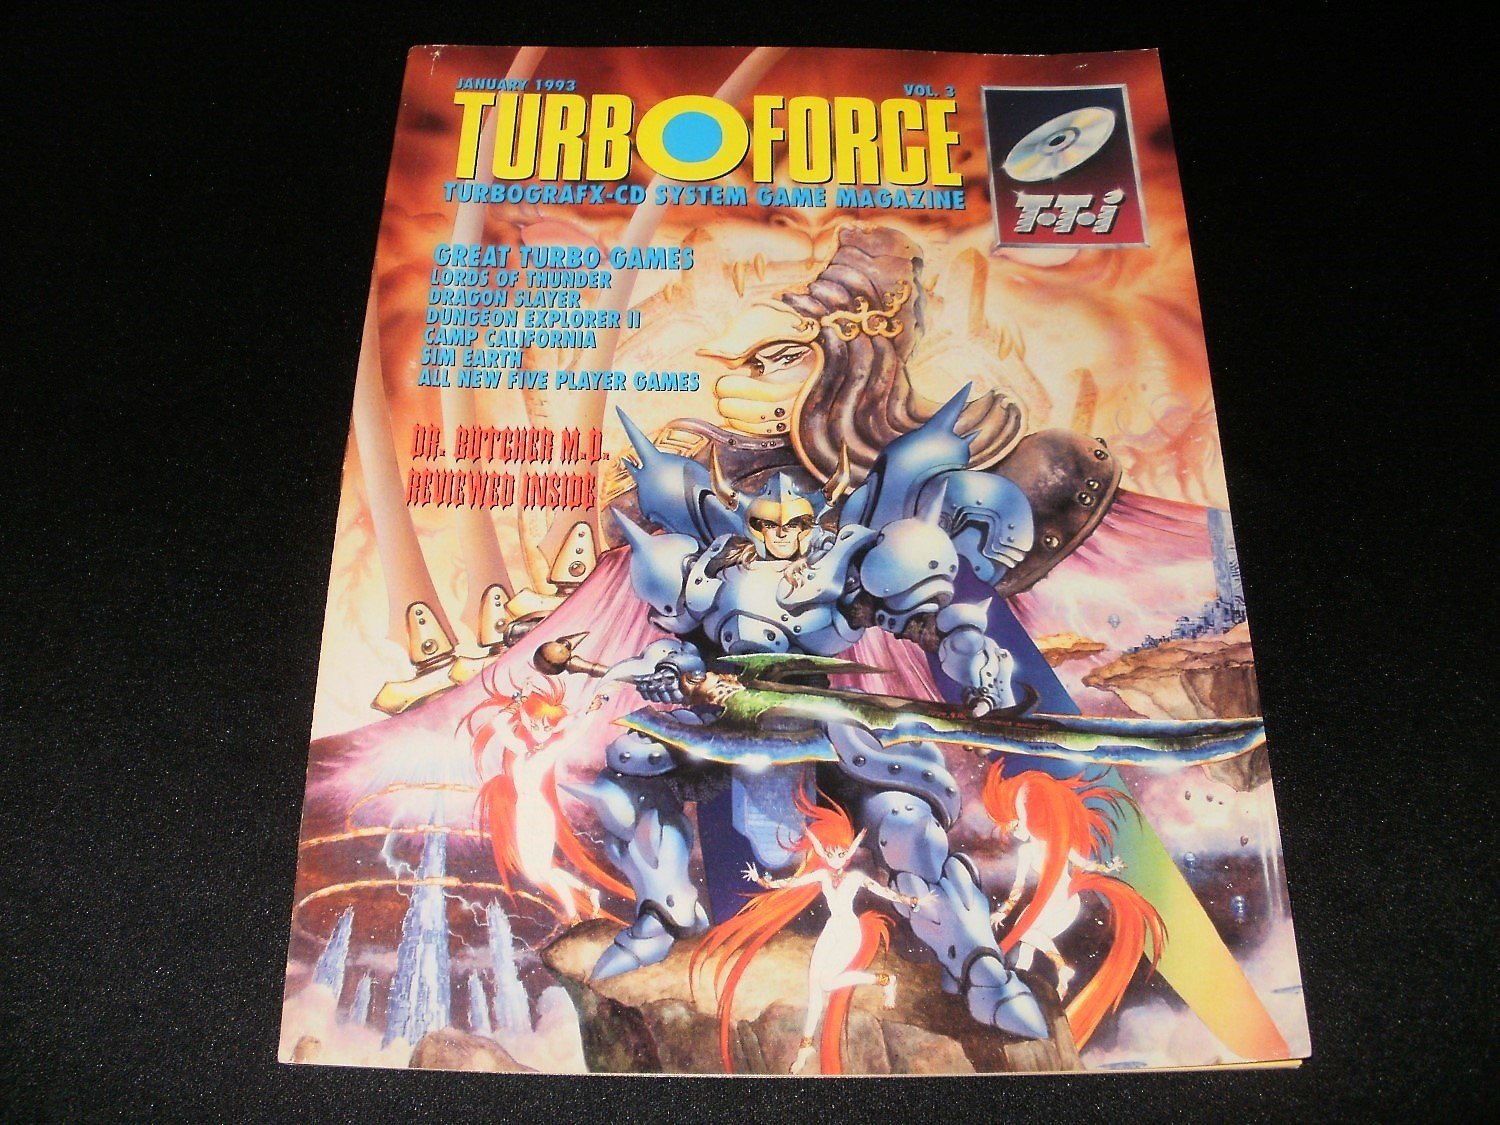 Turbo Force Magazine - January 1993 - Volume 3